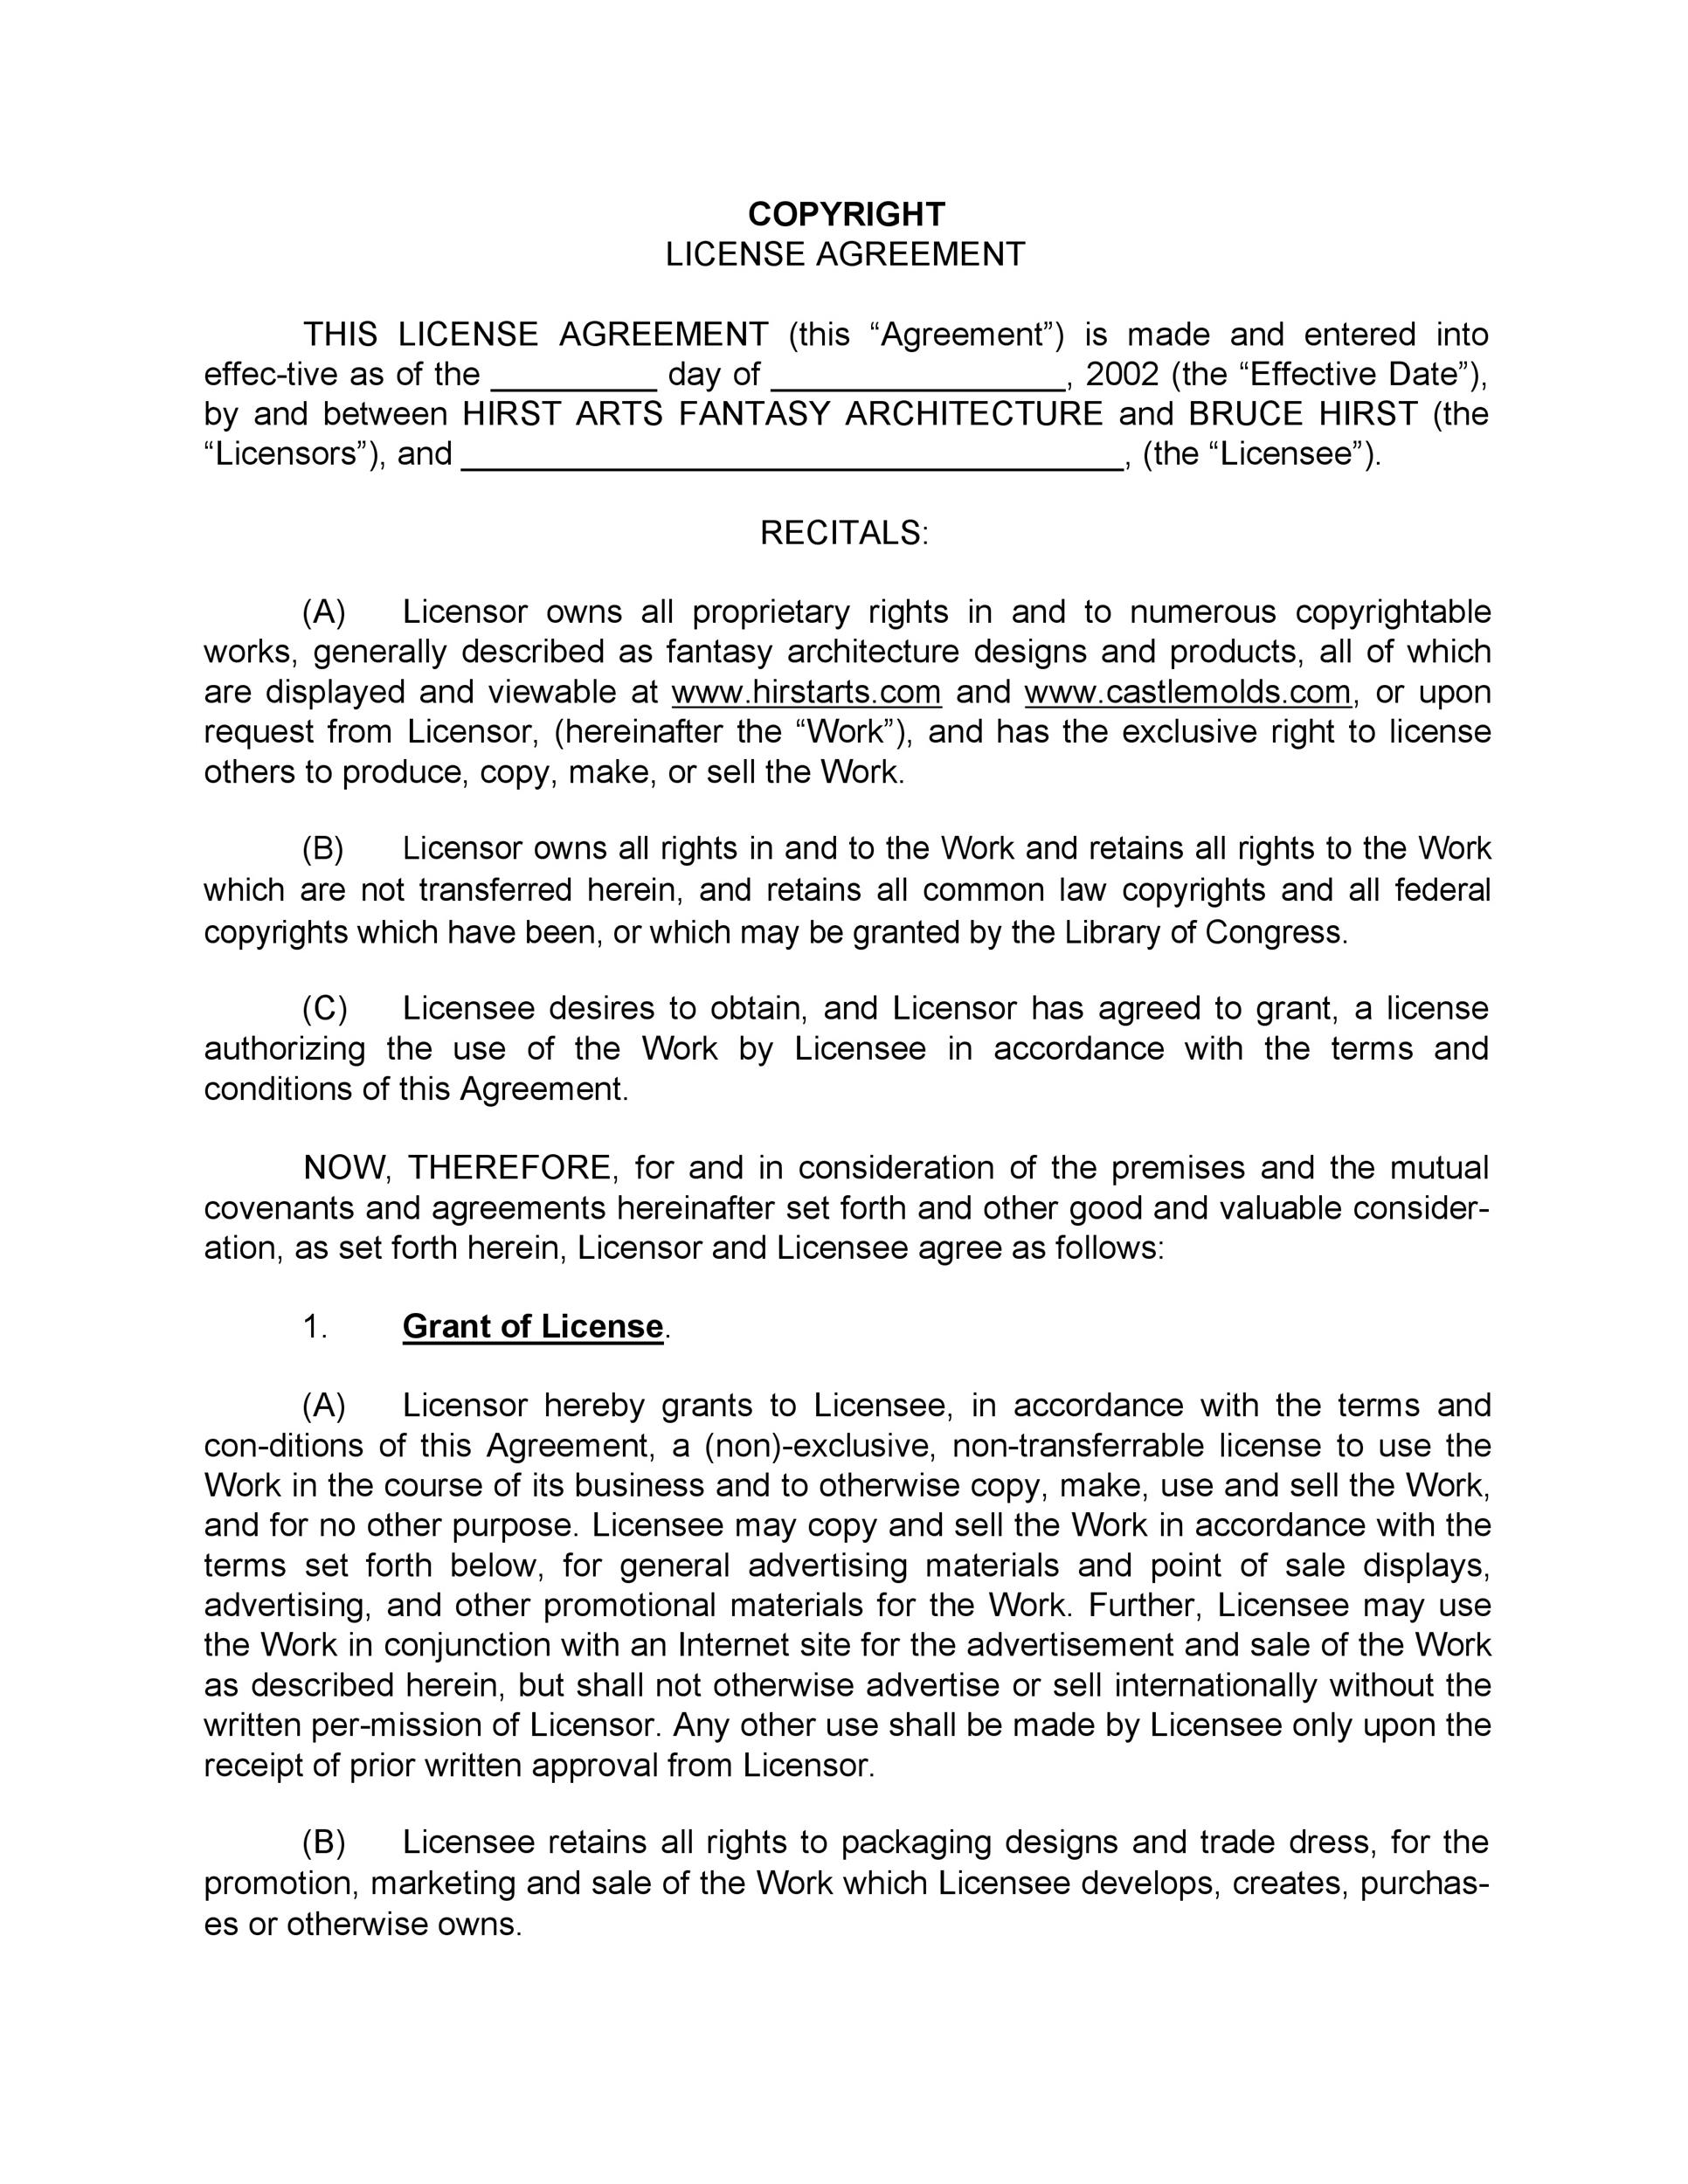 Free license agreement template 08